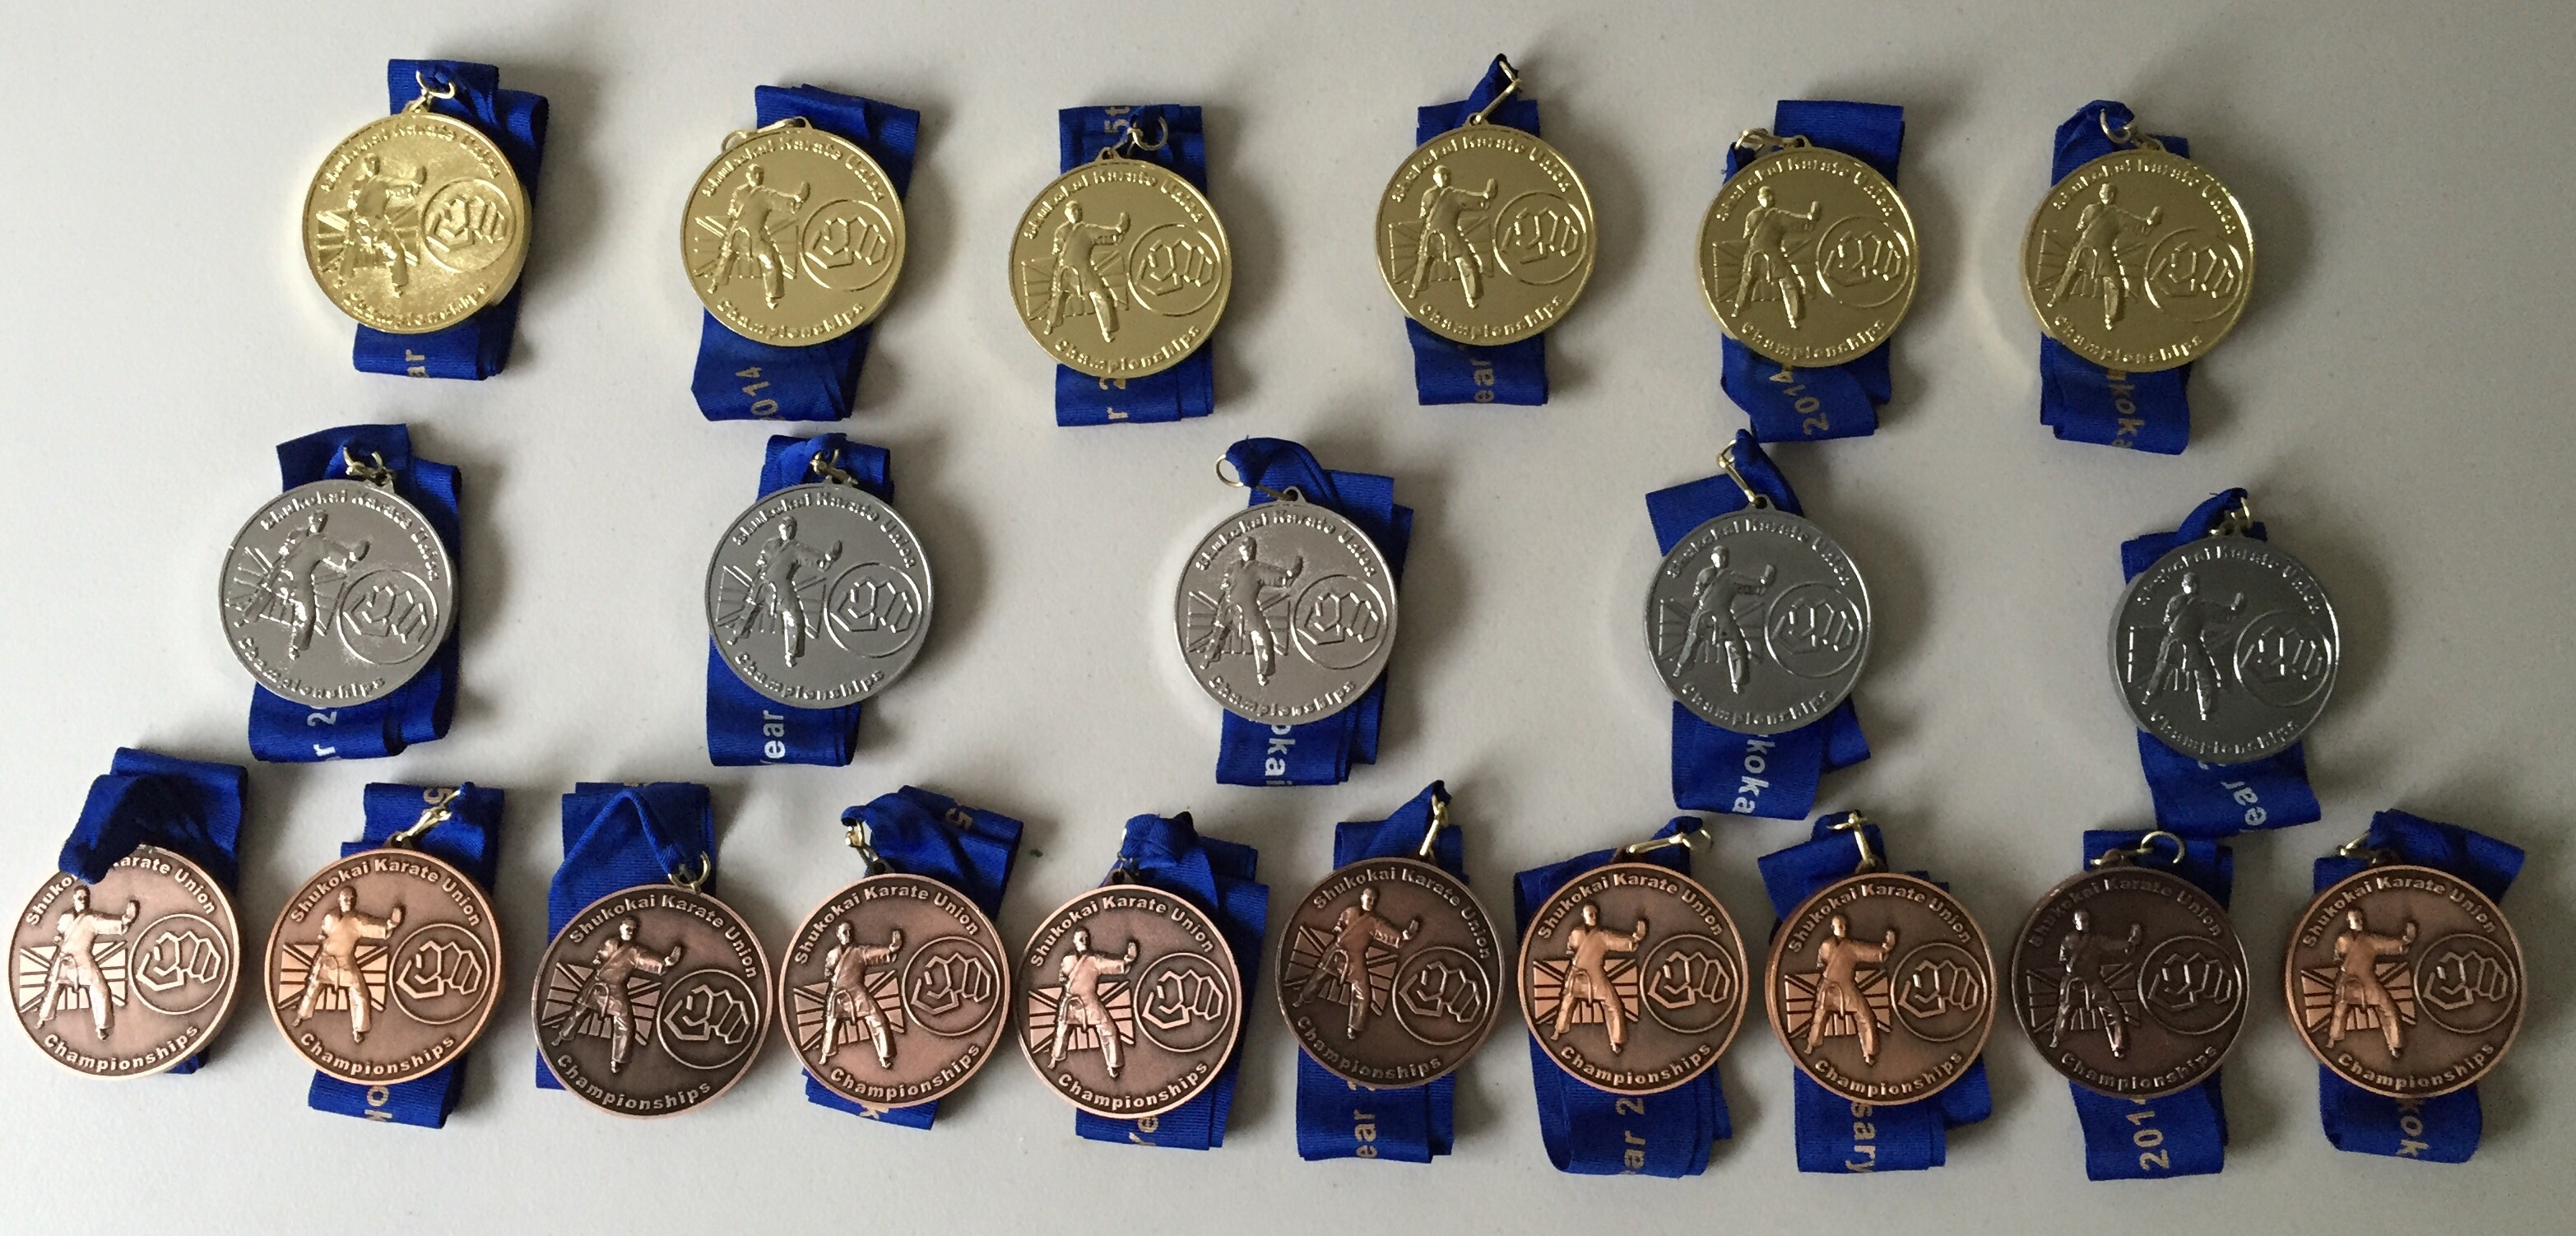 Medal Haul for TKC Students